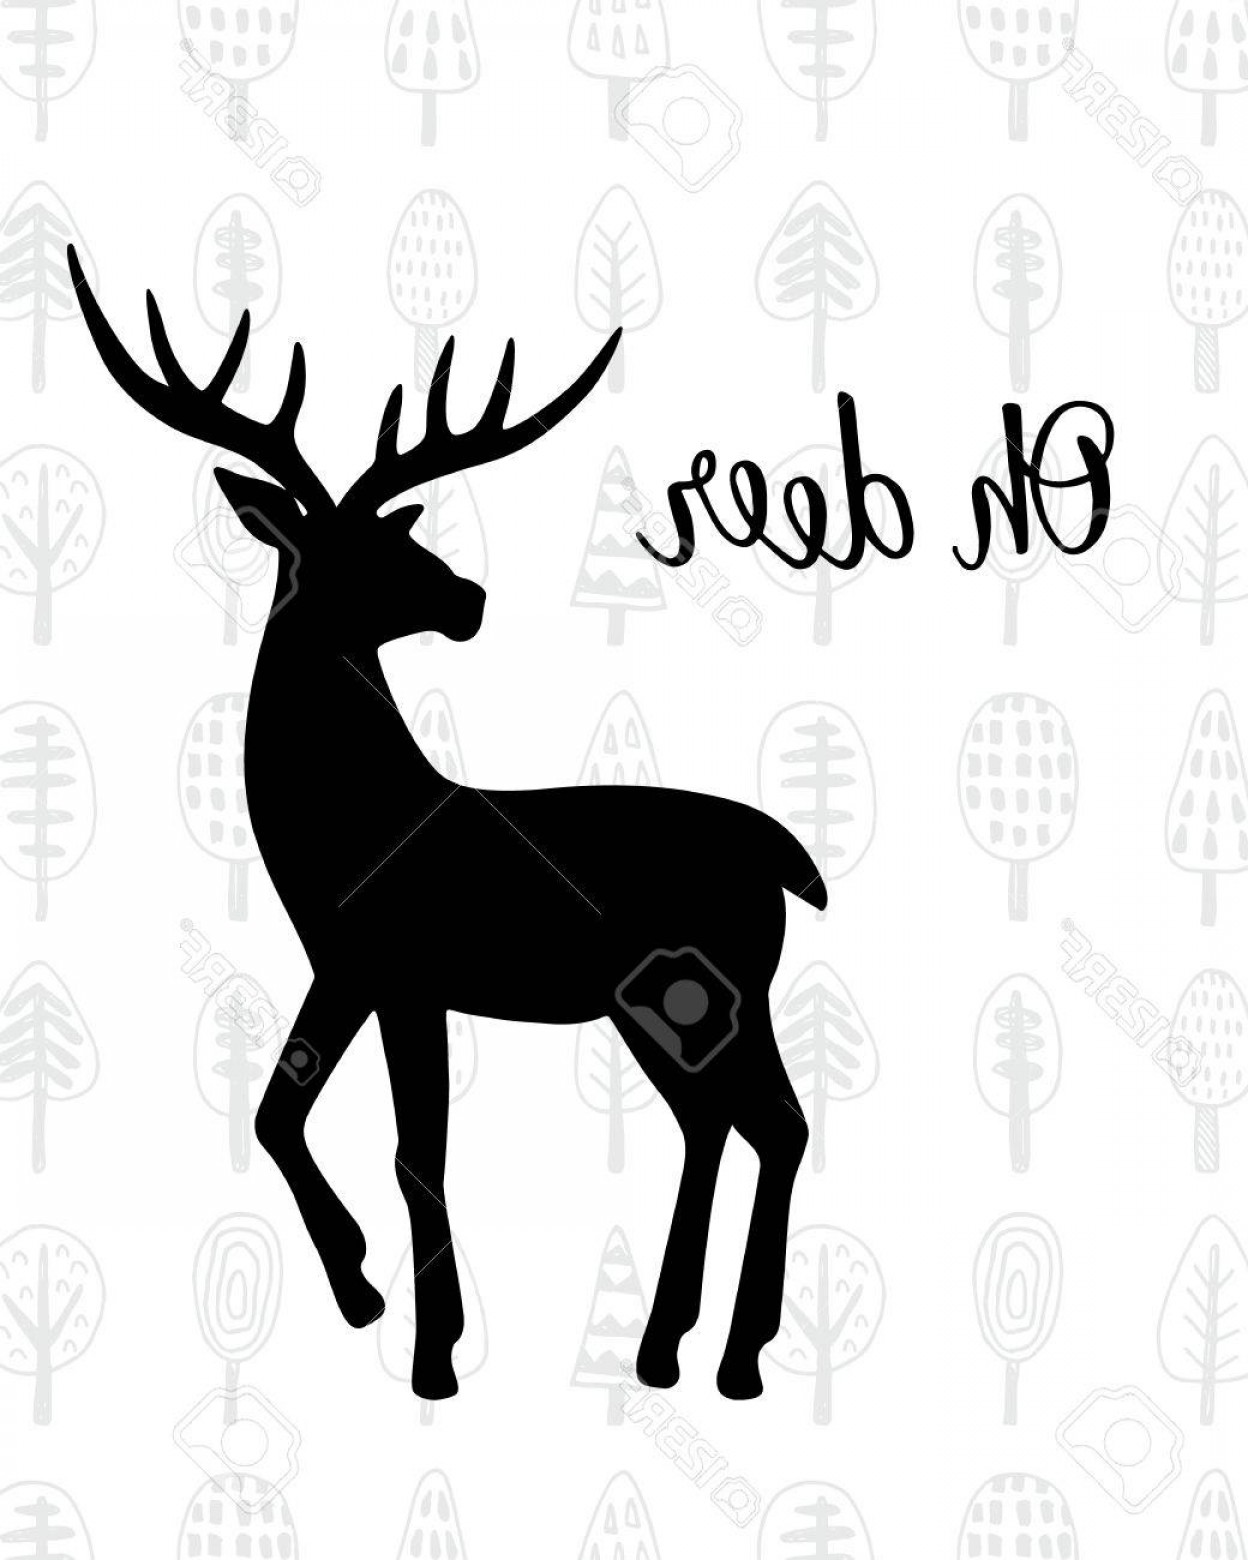 Black And White Holiday Deer Vector: Photostock Vector Oh Dear Winter Holidays Hand Drawn Deer Vector Illustration Greeting Card Poster Invitation Wall Art